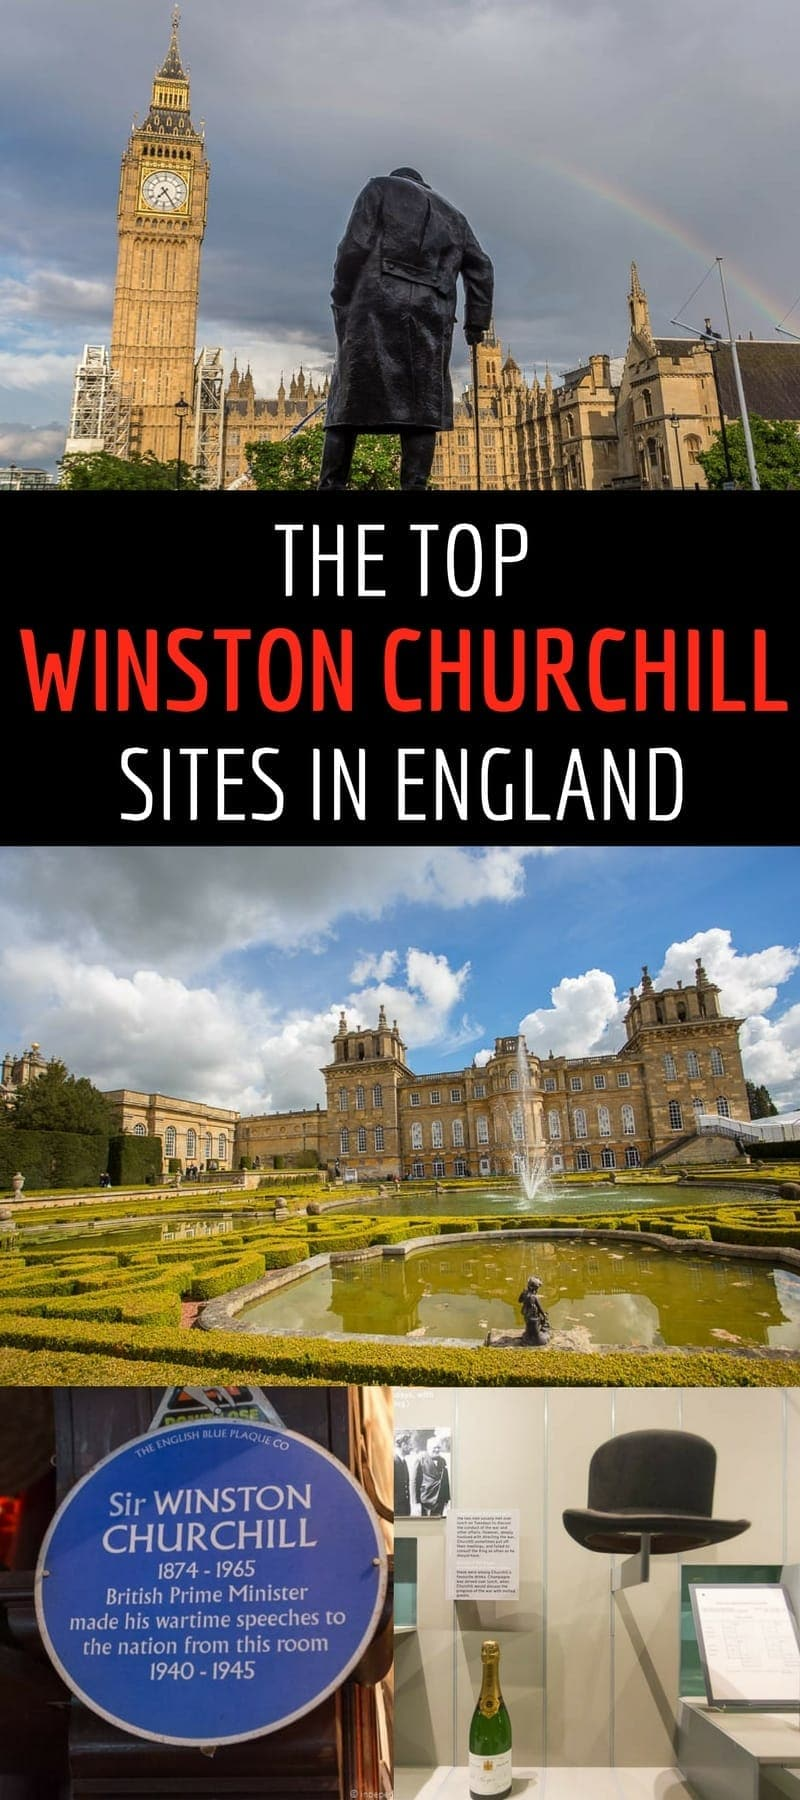 A guide to the top Winston Churchill sites in England, including Blenheim Palace, Chartwell, Bladon, St. Margaret's Church, and several other Churchill sites in London. Article explains the Winston Churchill connection and provides tips & travel advice for visiting each site.